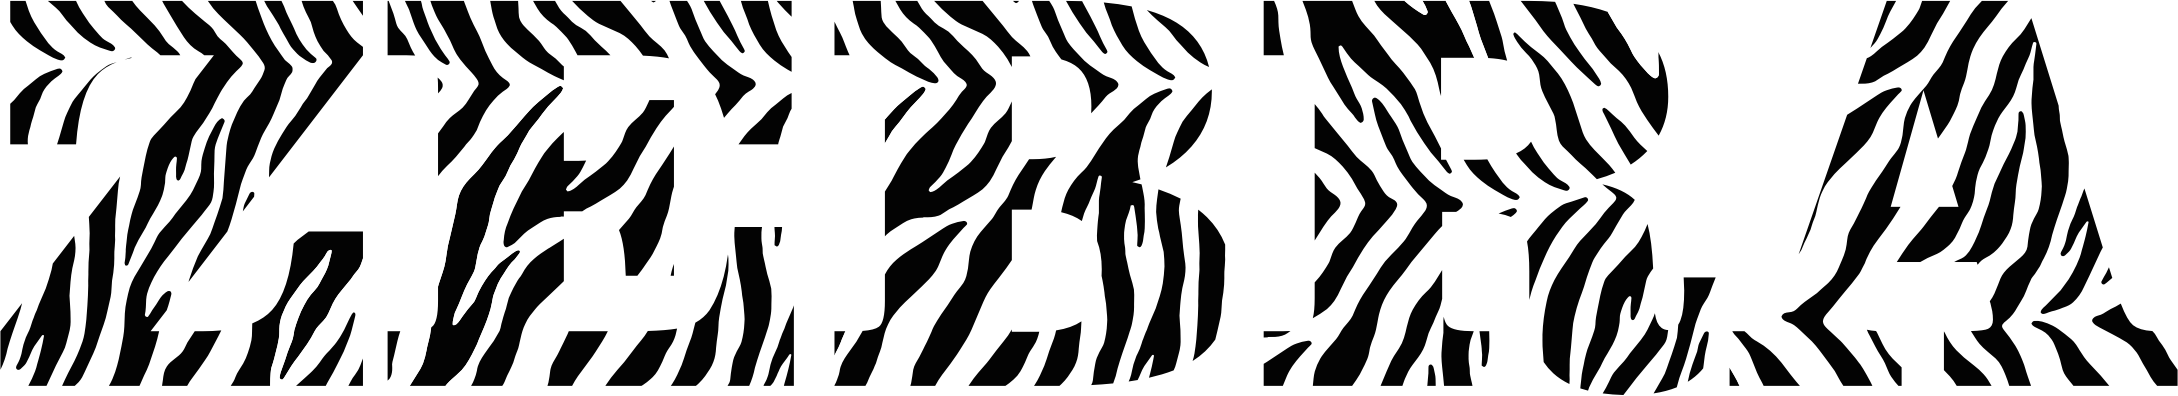 Zebra Typography by GDJ